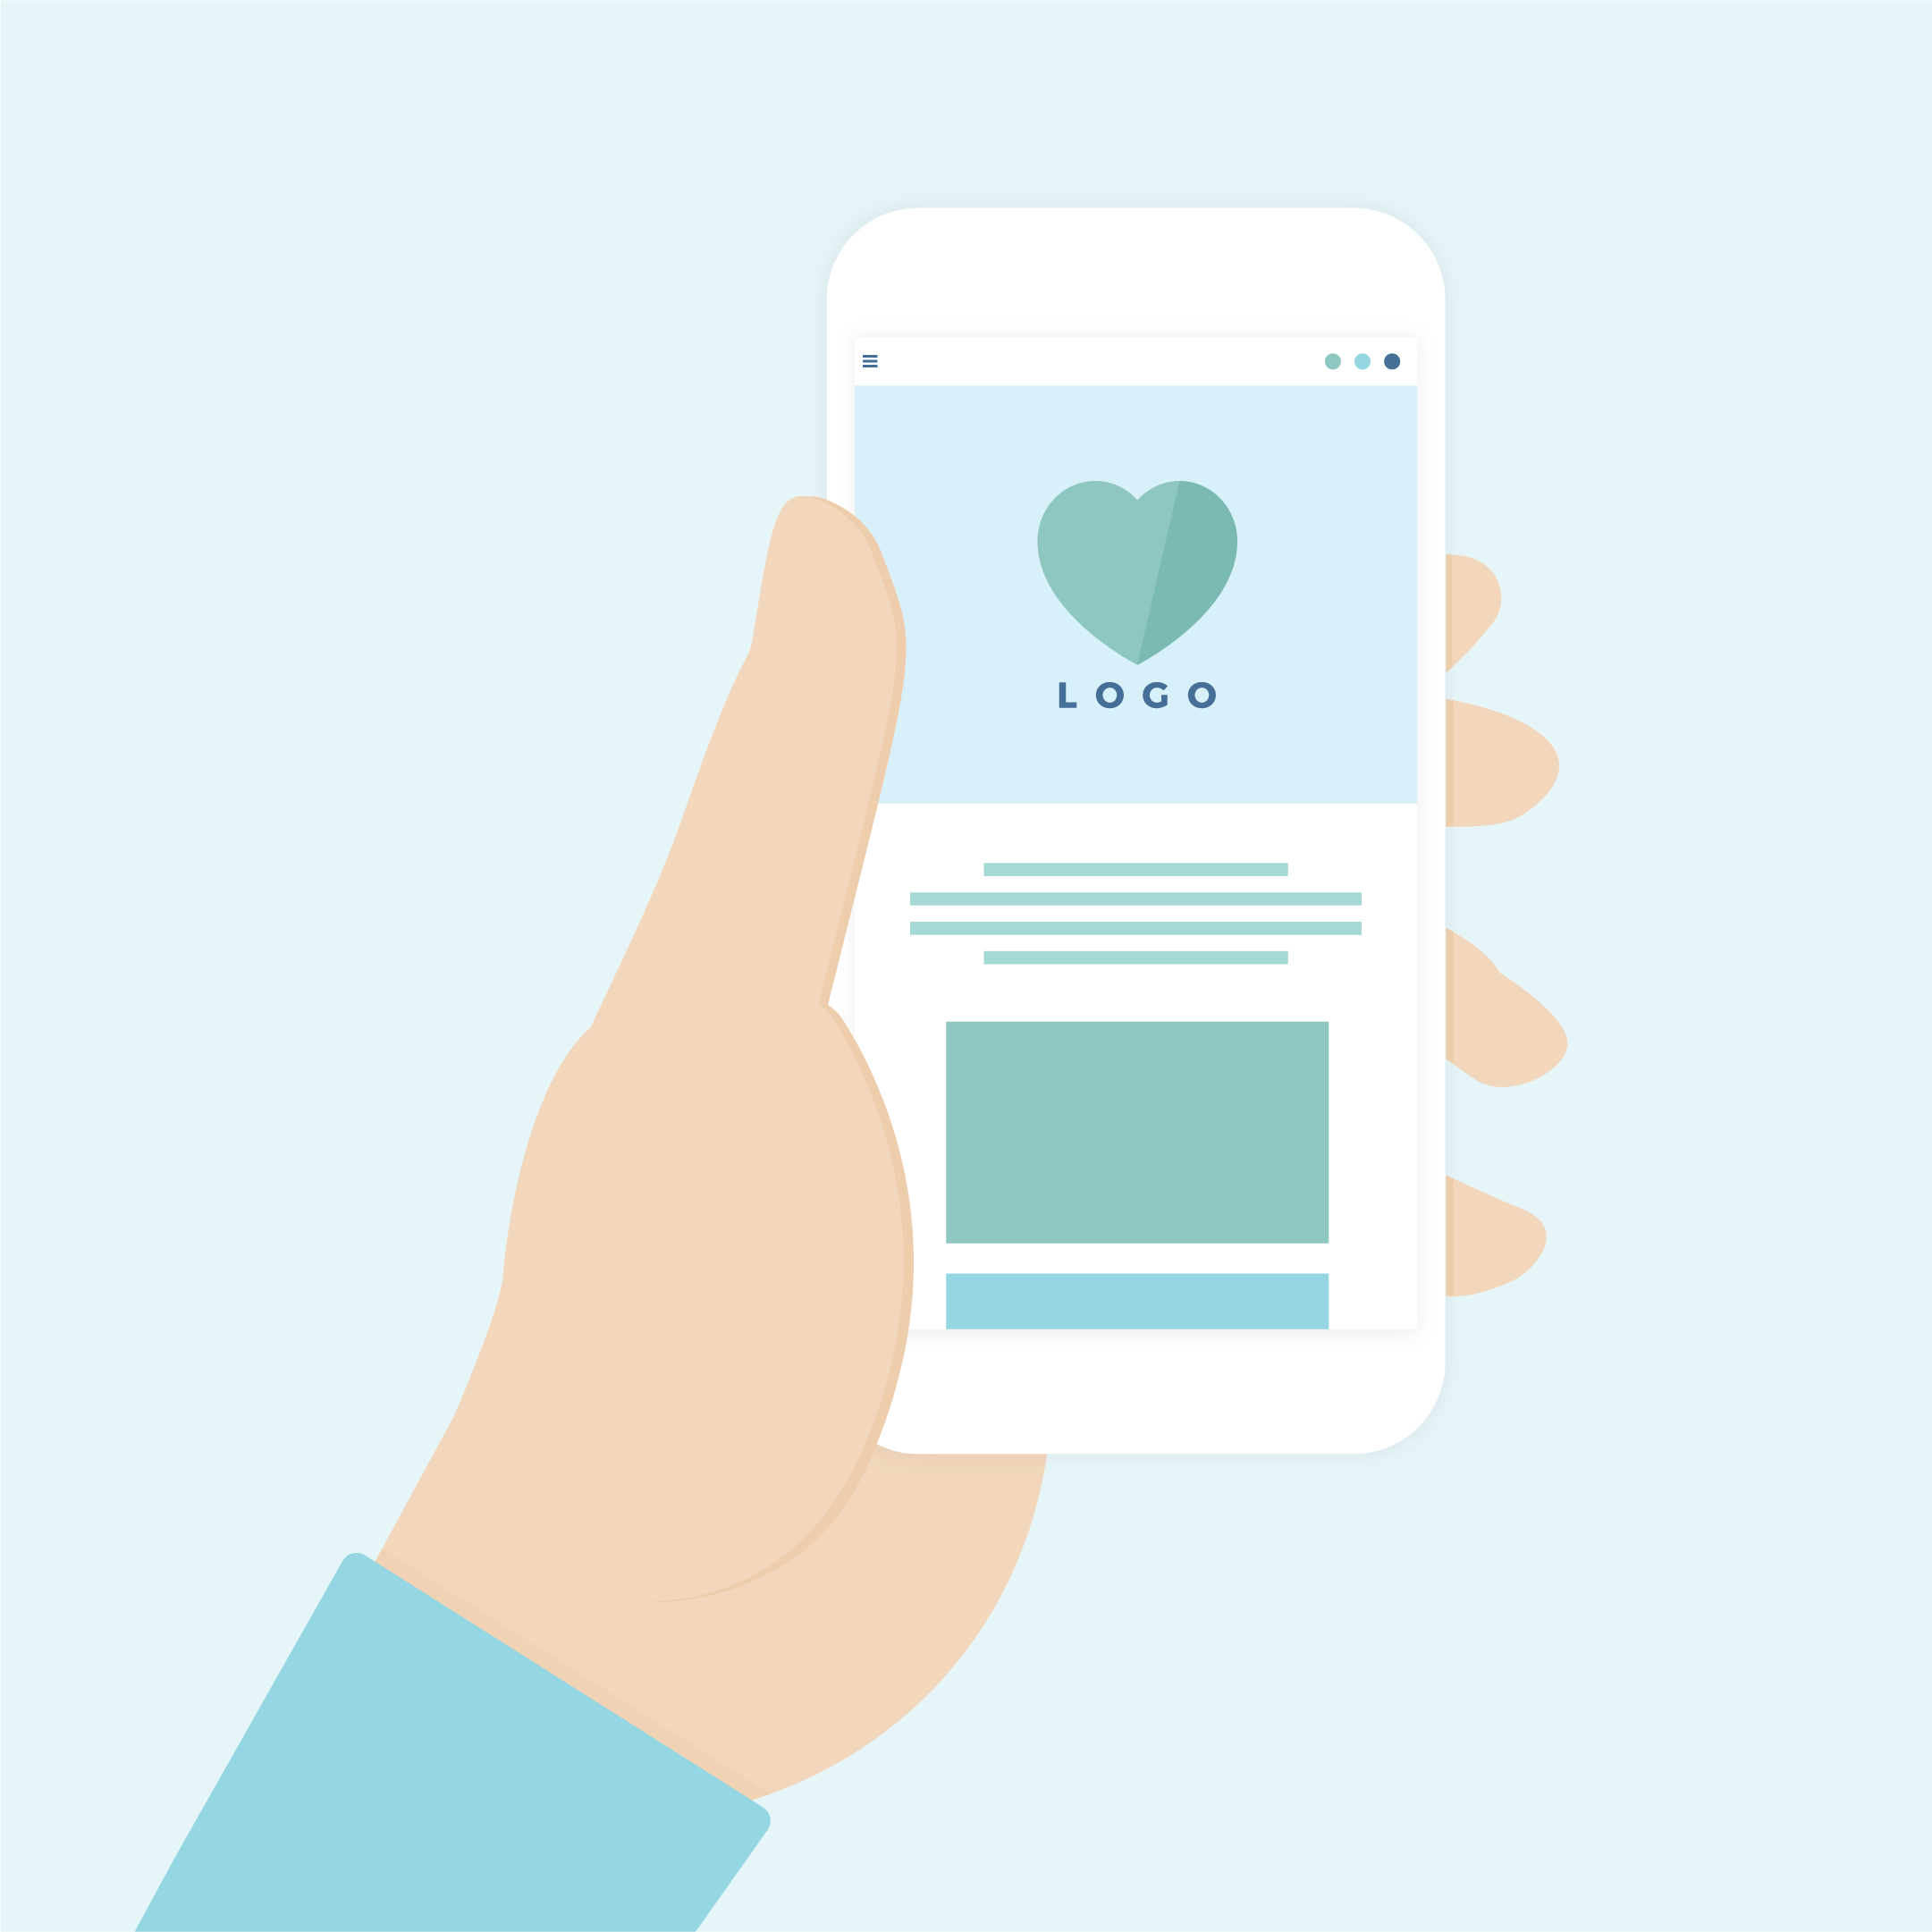 Vector illustration of a hand holding a mobile phone, while viewing a website in flat design style